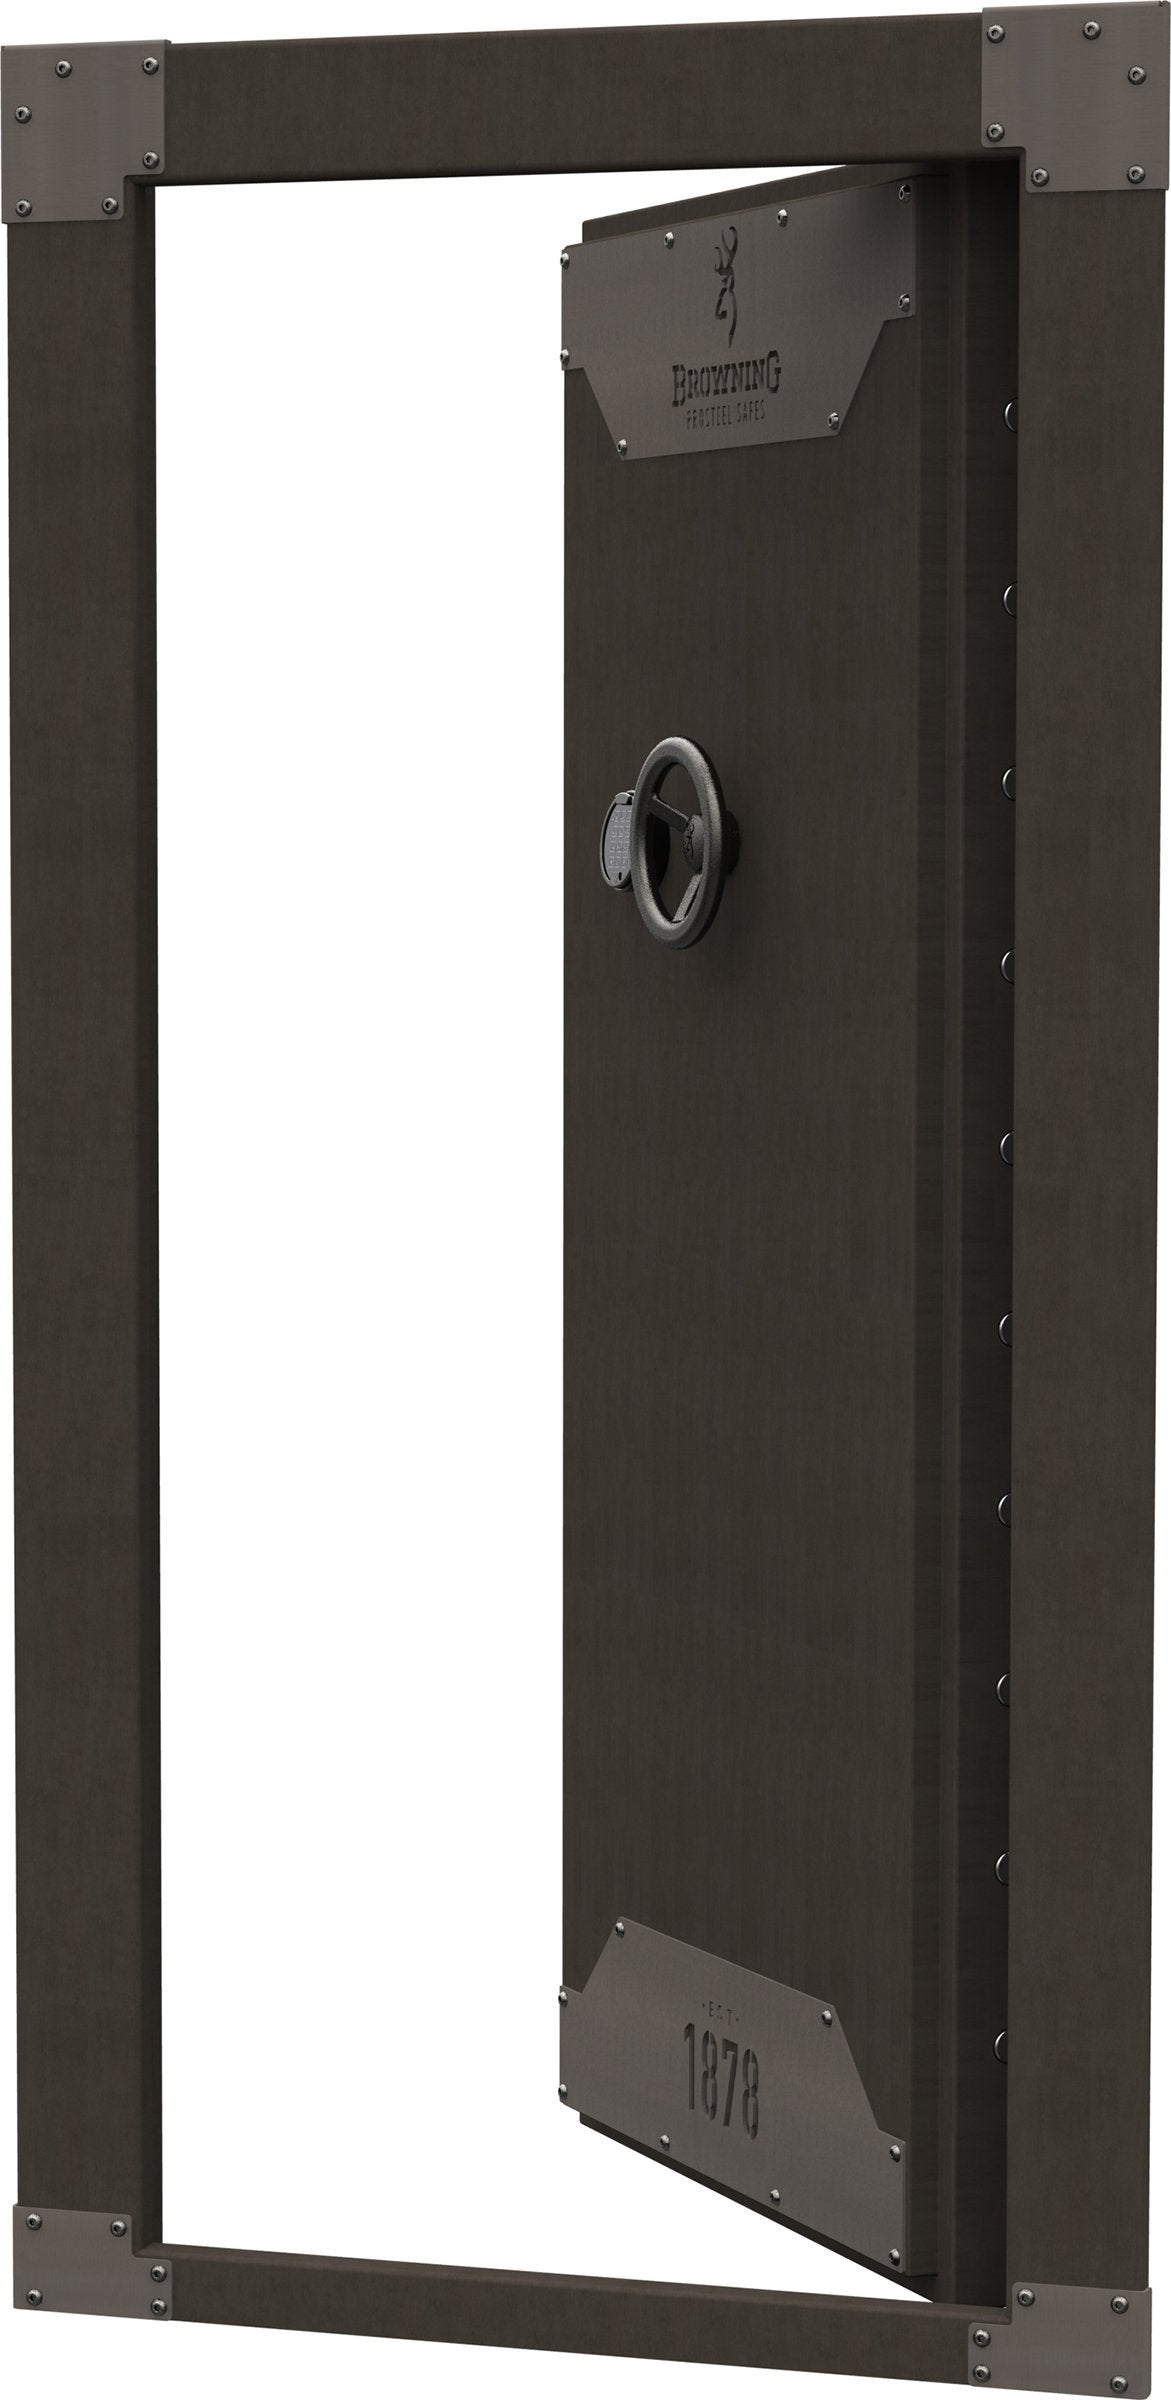 Vault Doors - Browning 1878 Clamshell Vault Door Metal Glaze - In-Swing - 1601100340